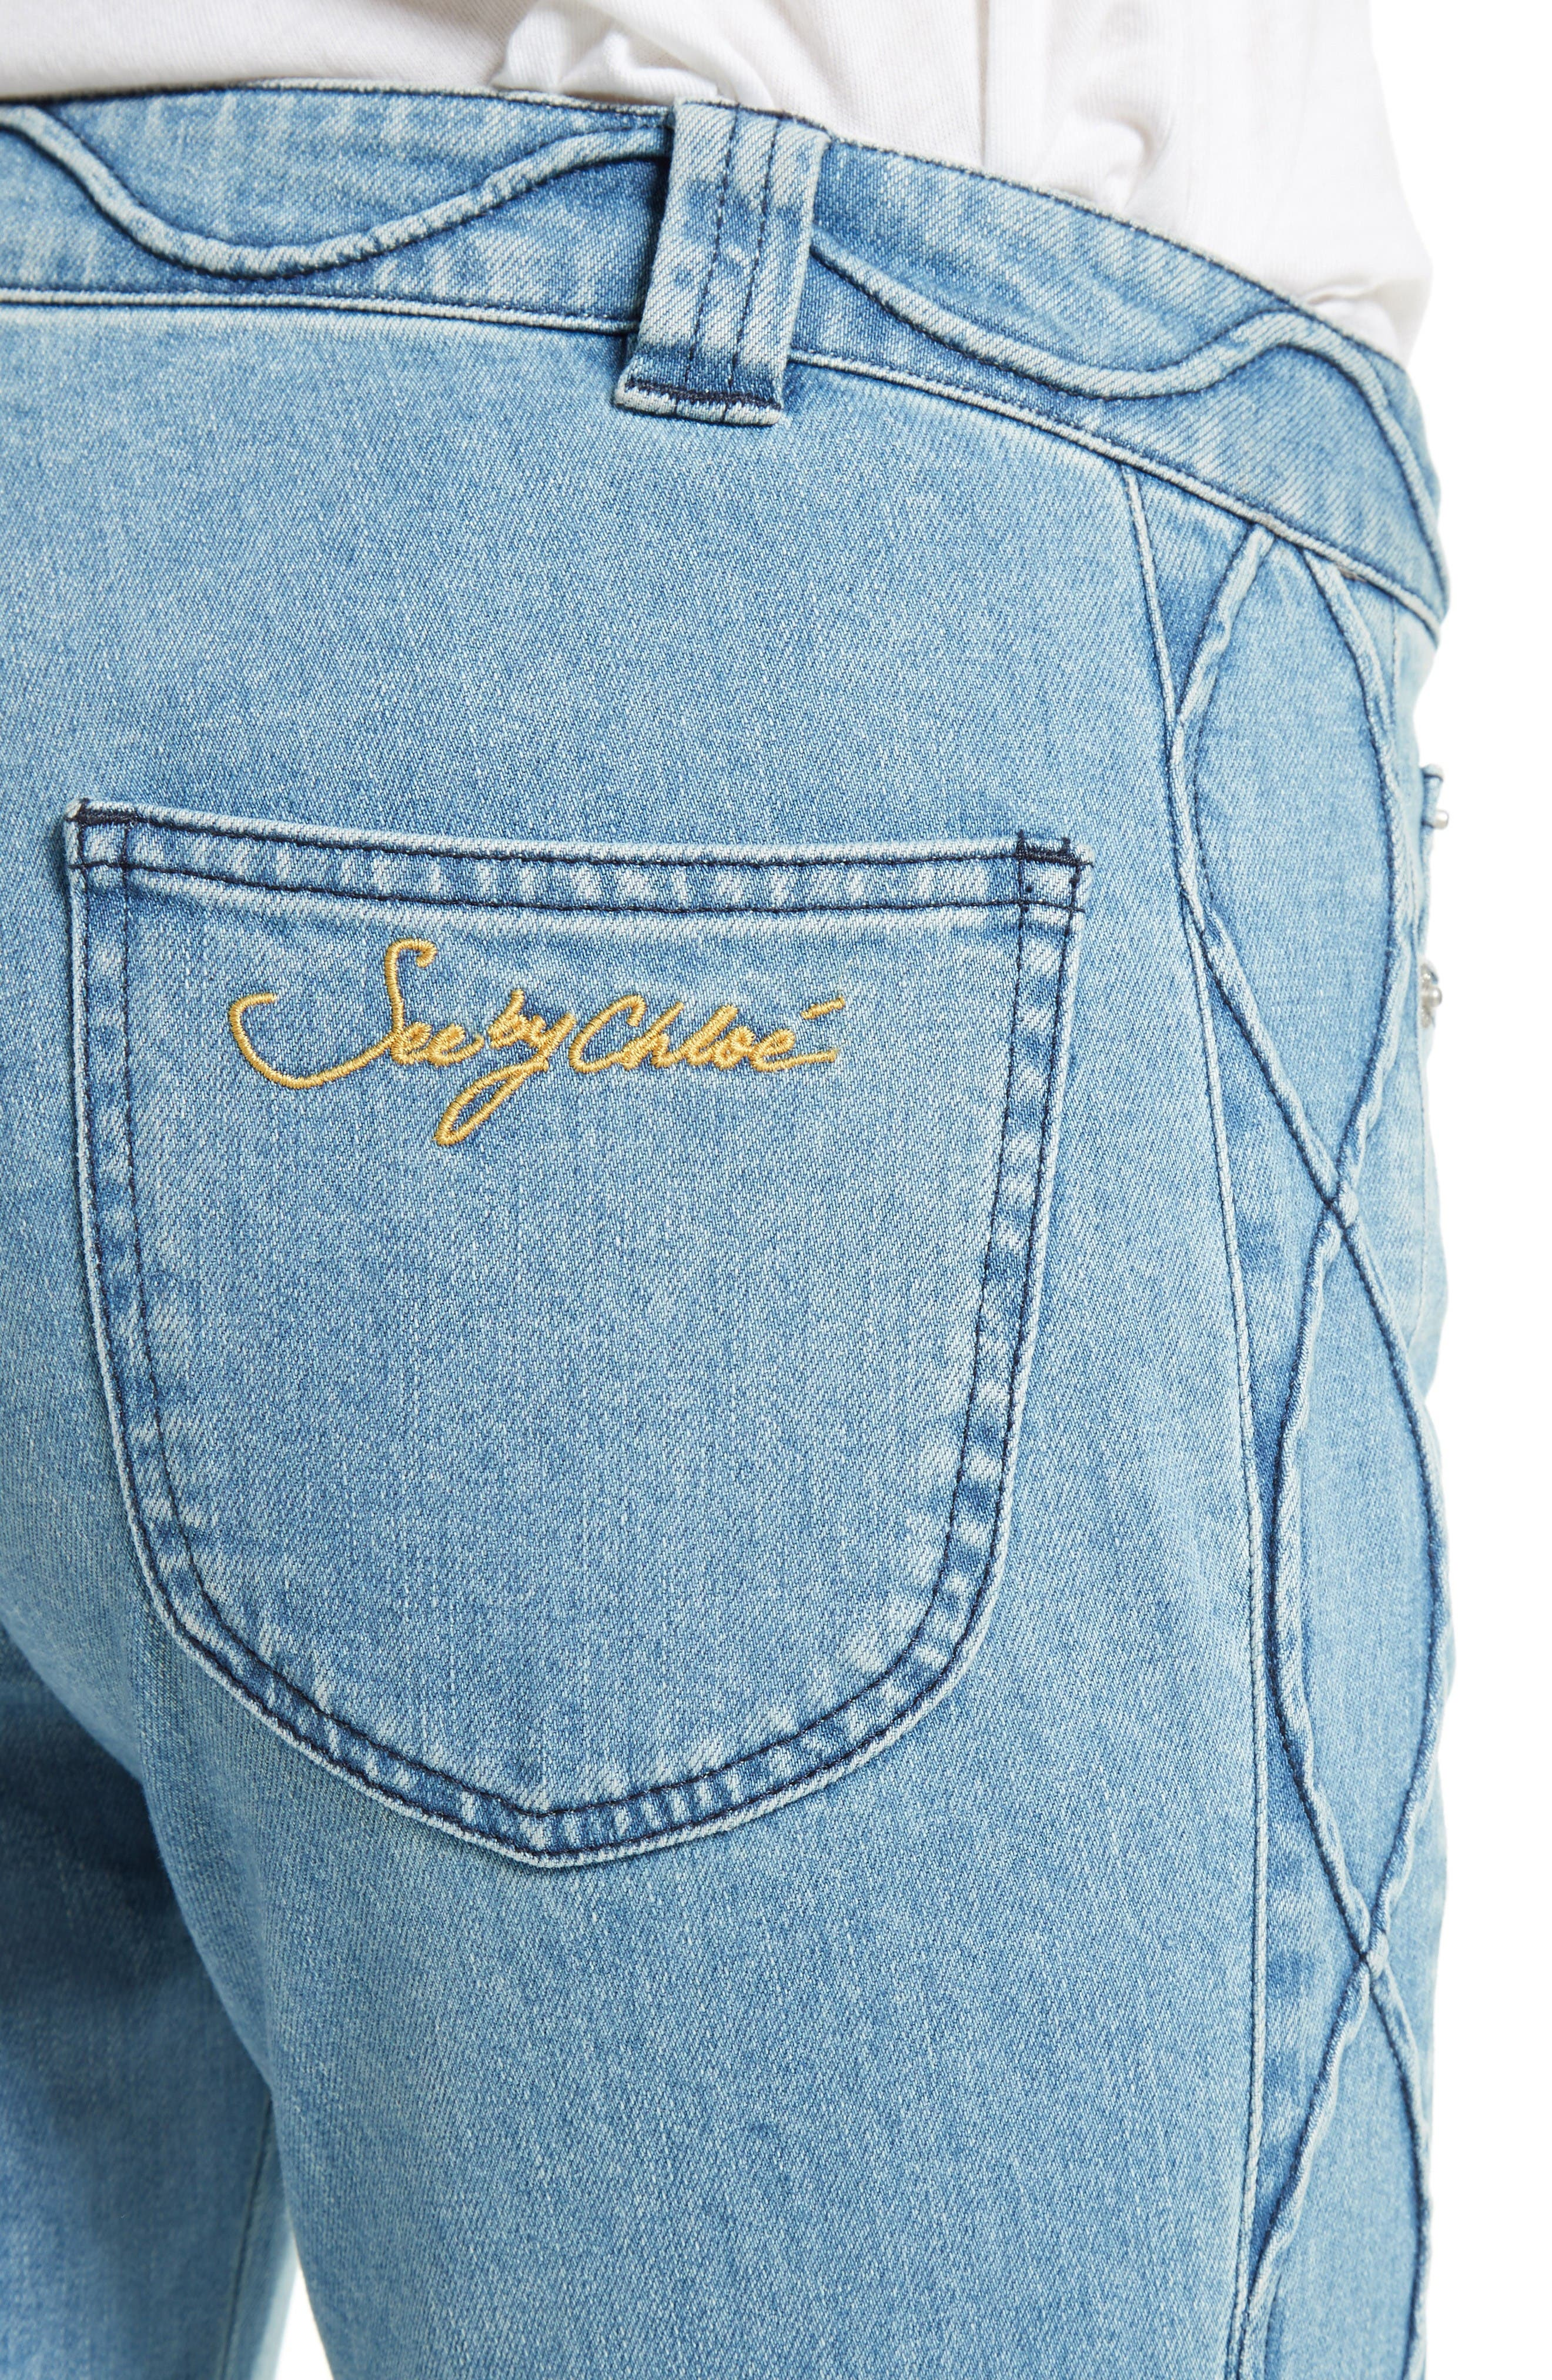 Alternate Image 4  - See by Chloé Iconic Ankle Flare Jeans (Stoned Indigo)